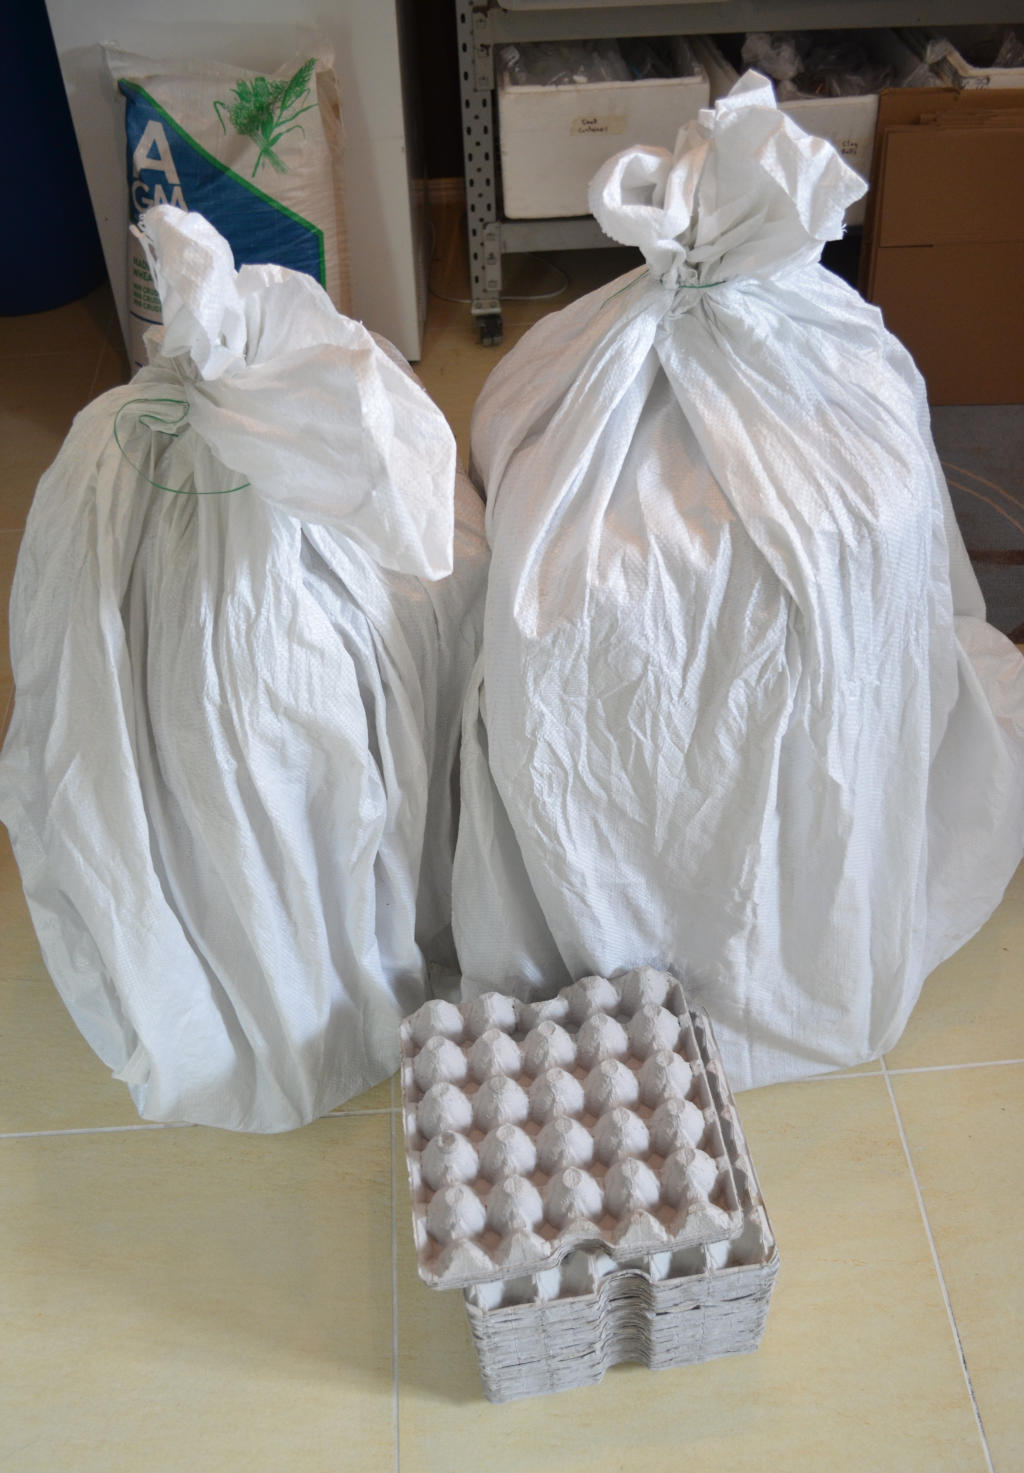 photo of two piles of egg cartons stored in large white bags. Bags prevent pests infesting egg cartons for insect farms.